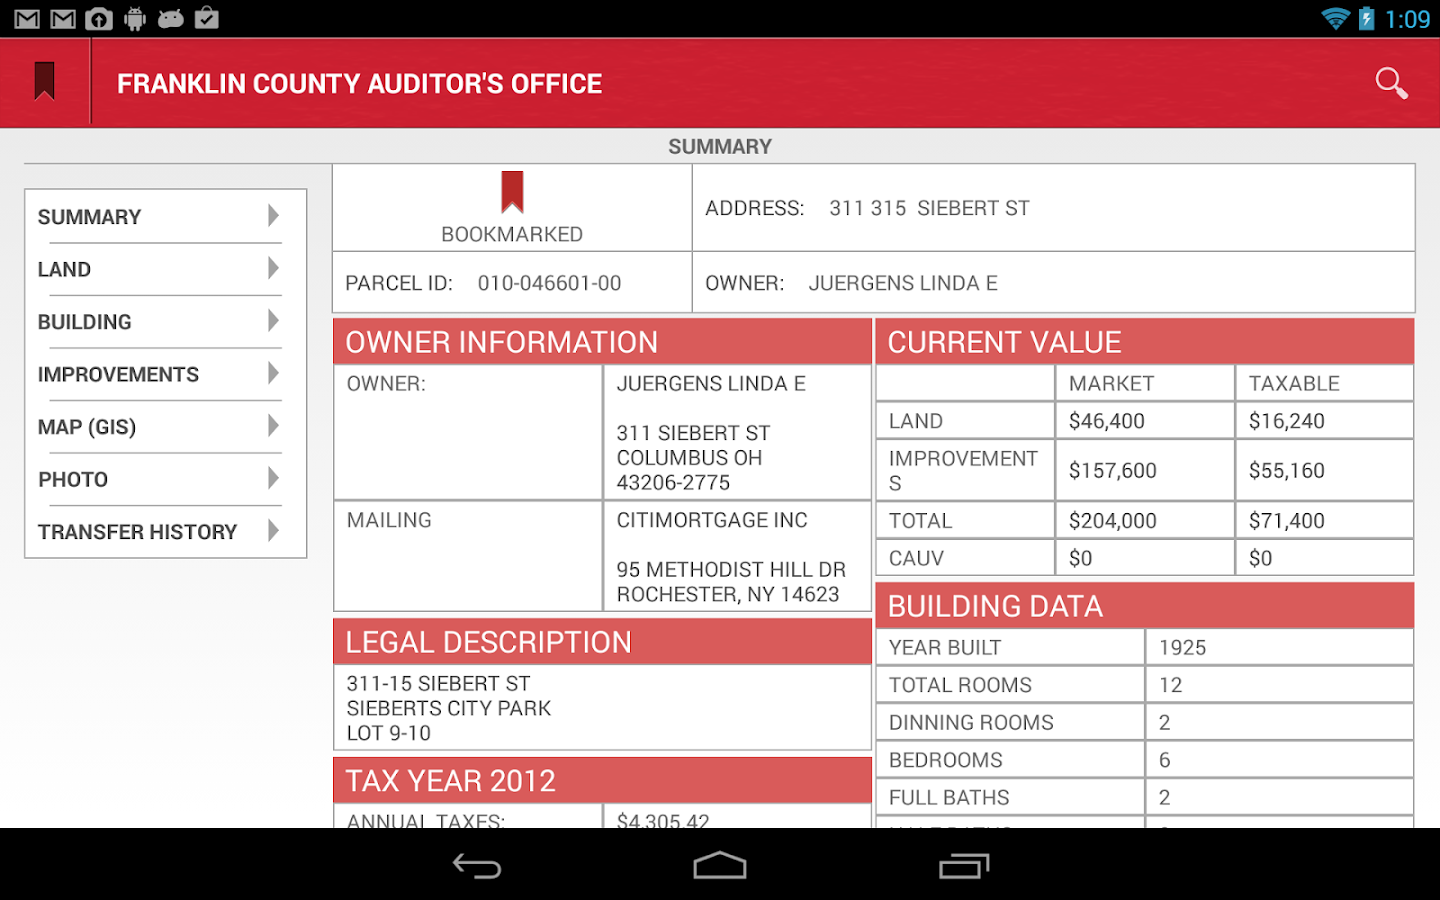 Franklin County Auditor - Home